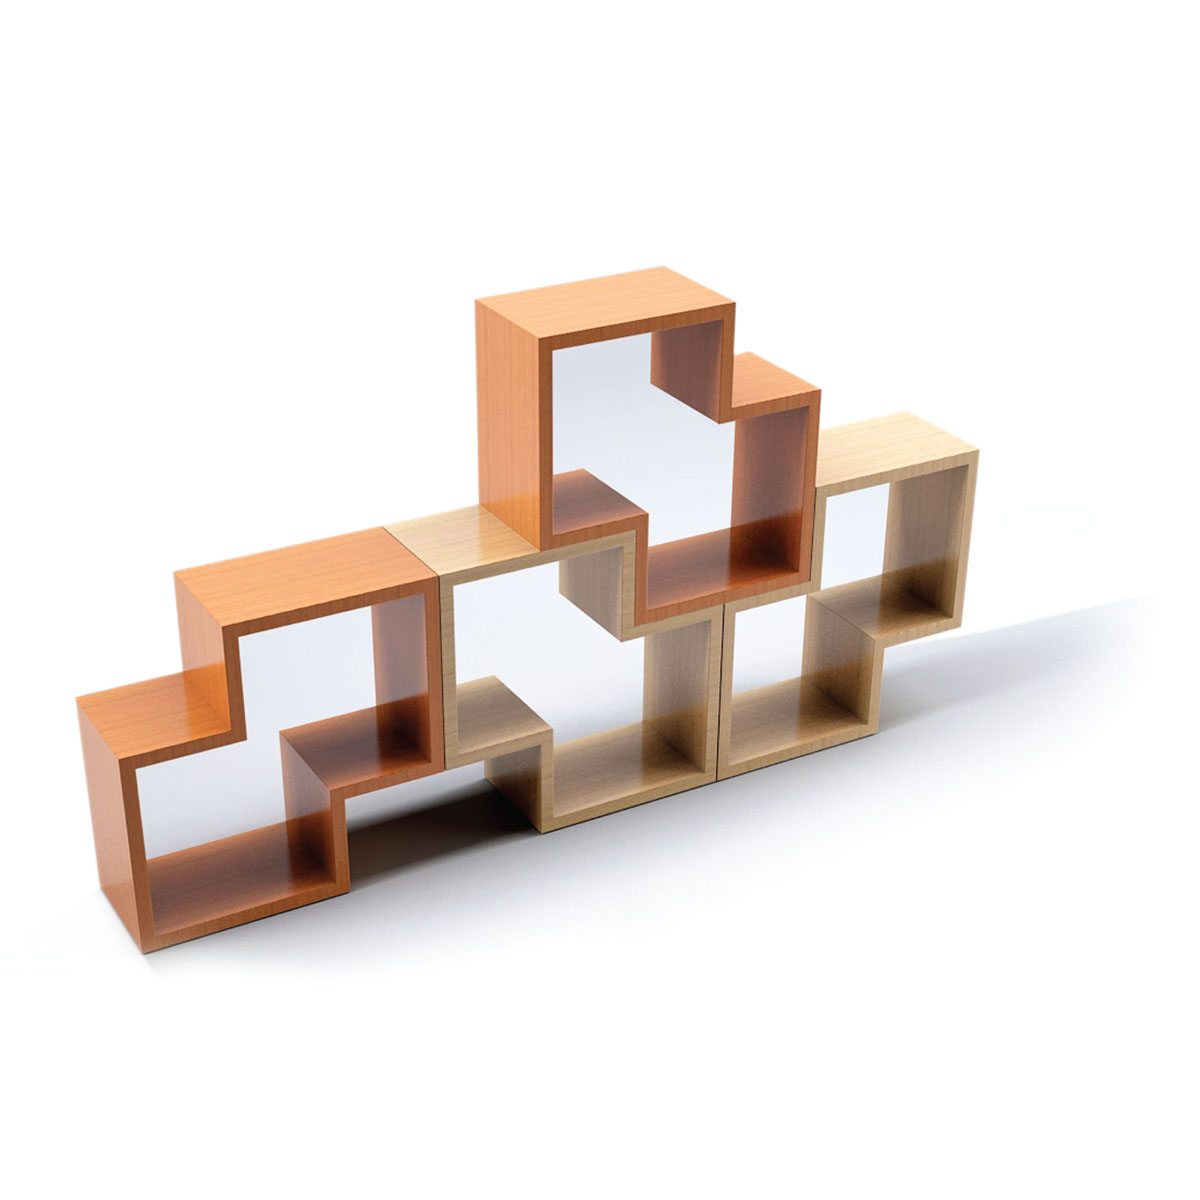 CUBELVES Shelf System